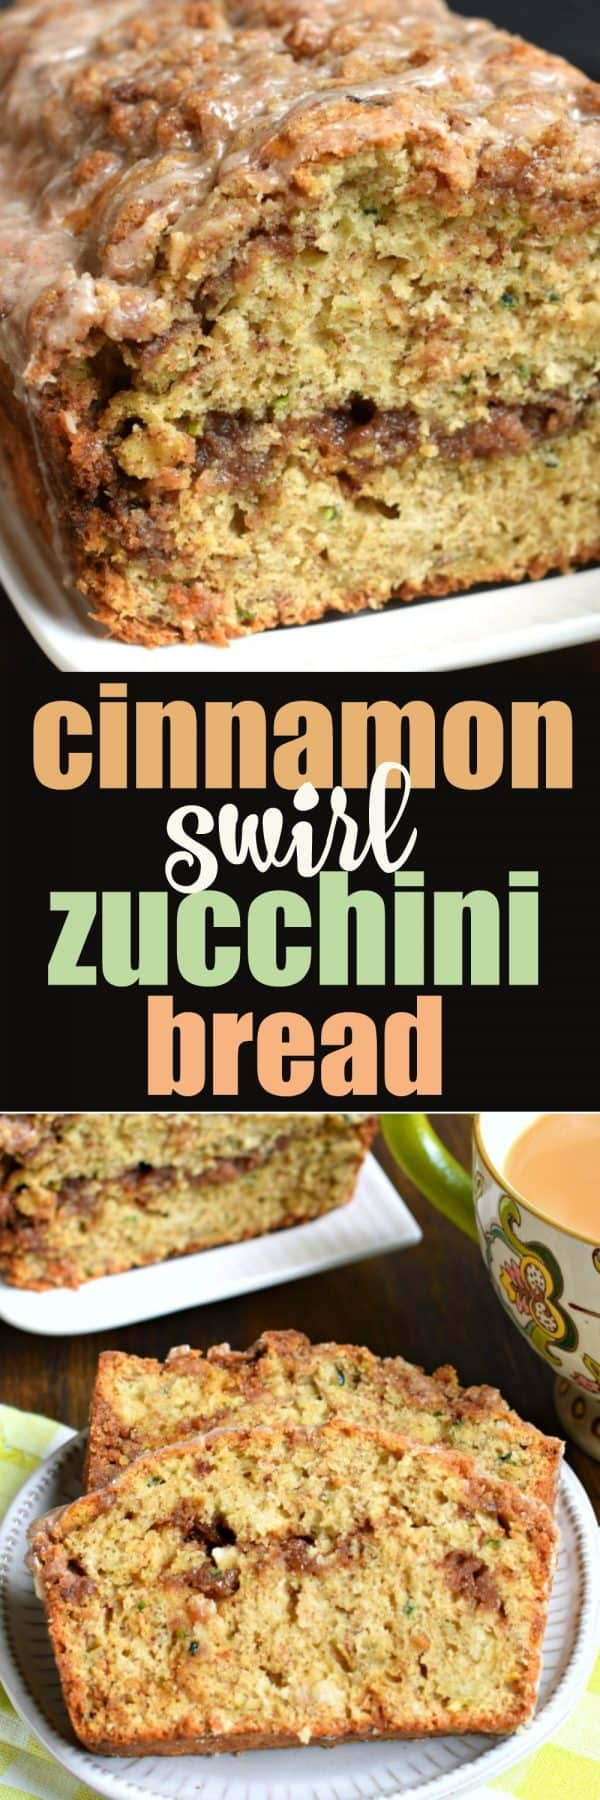 Cinnamon Swirl Zucchini Bread that tastes like coffee cake. Topped with cinnamon glaze!